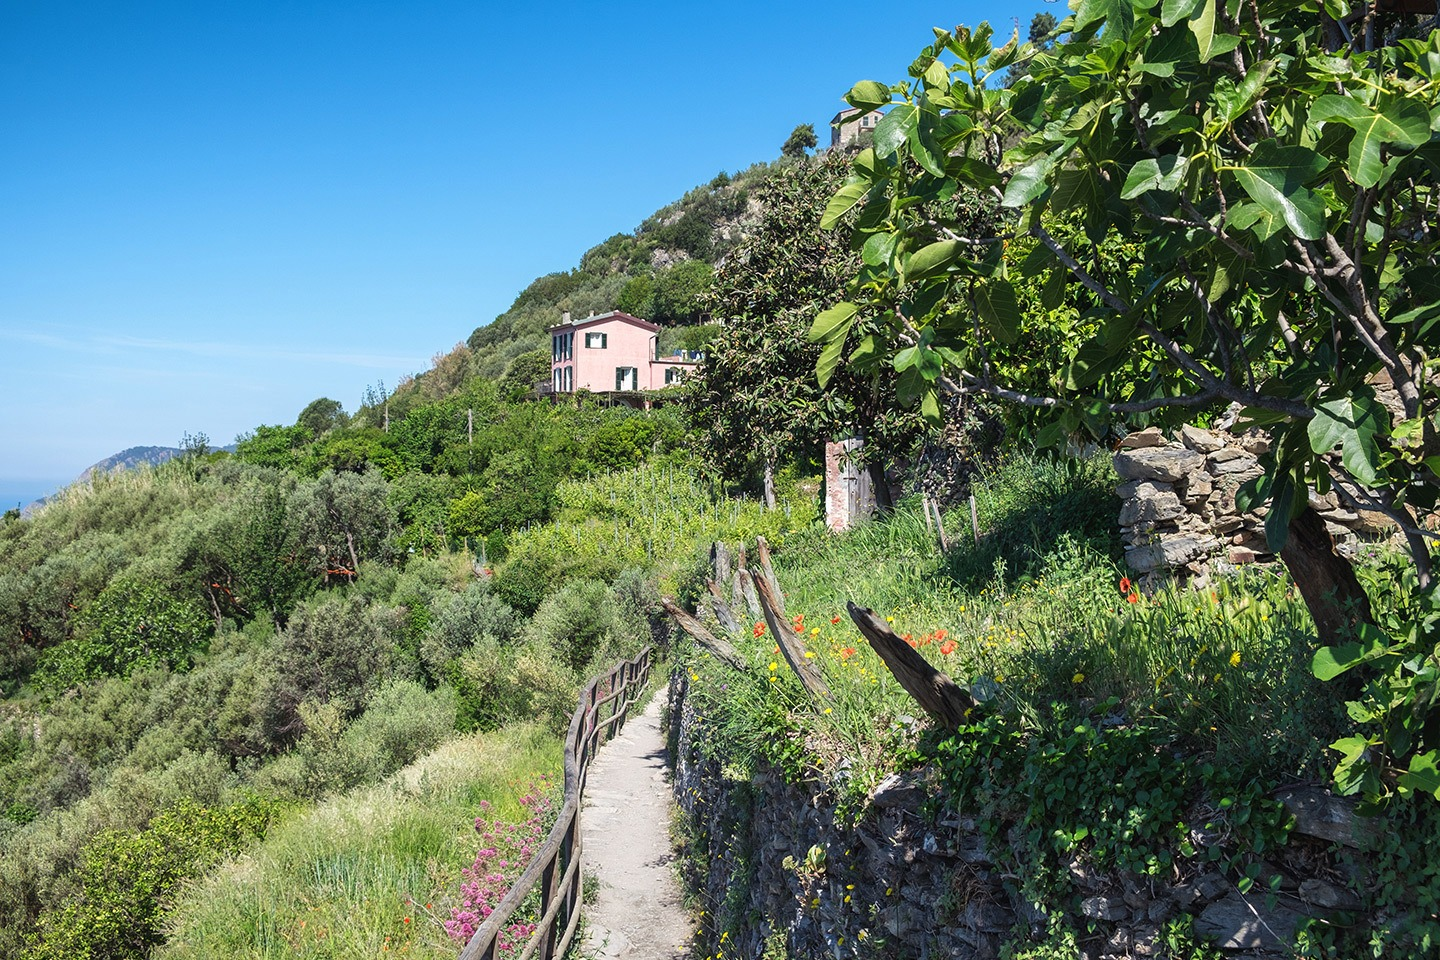 On the walking path to Vernazza in the Cinque Terre